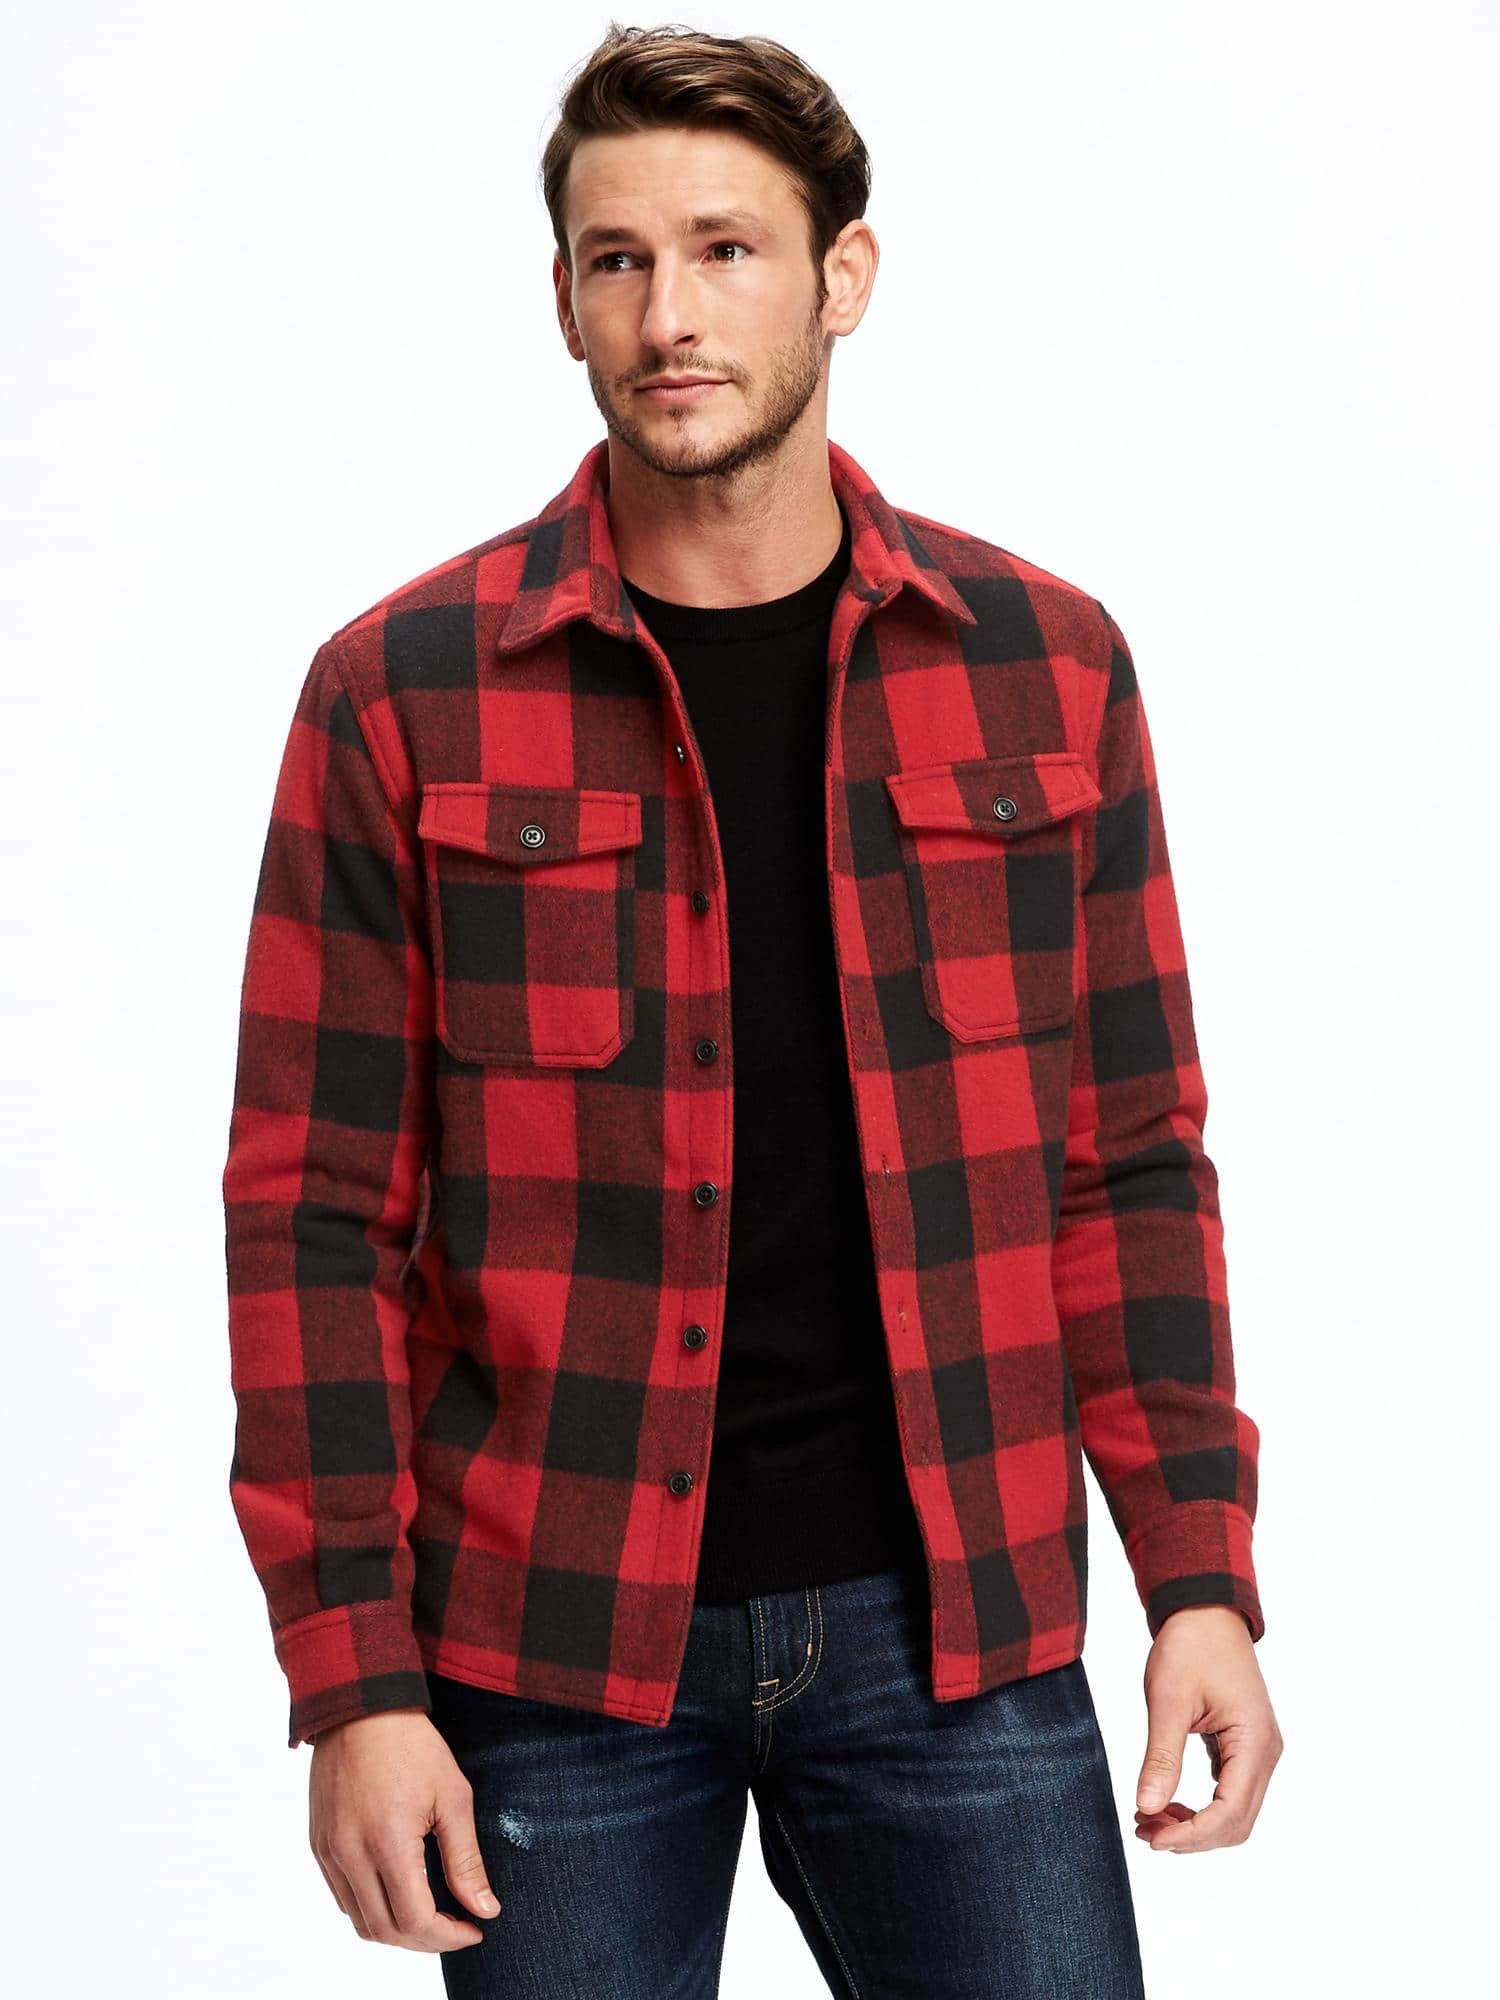 Buffalo Plaid Shirt Jacket | Clothes | Pinterest